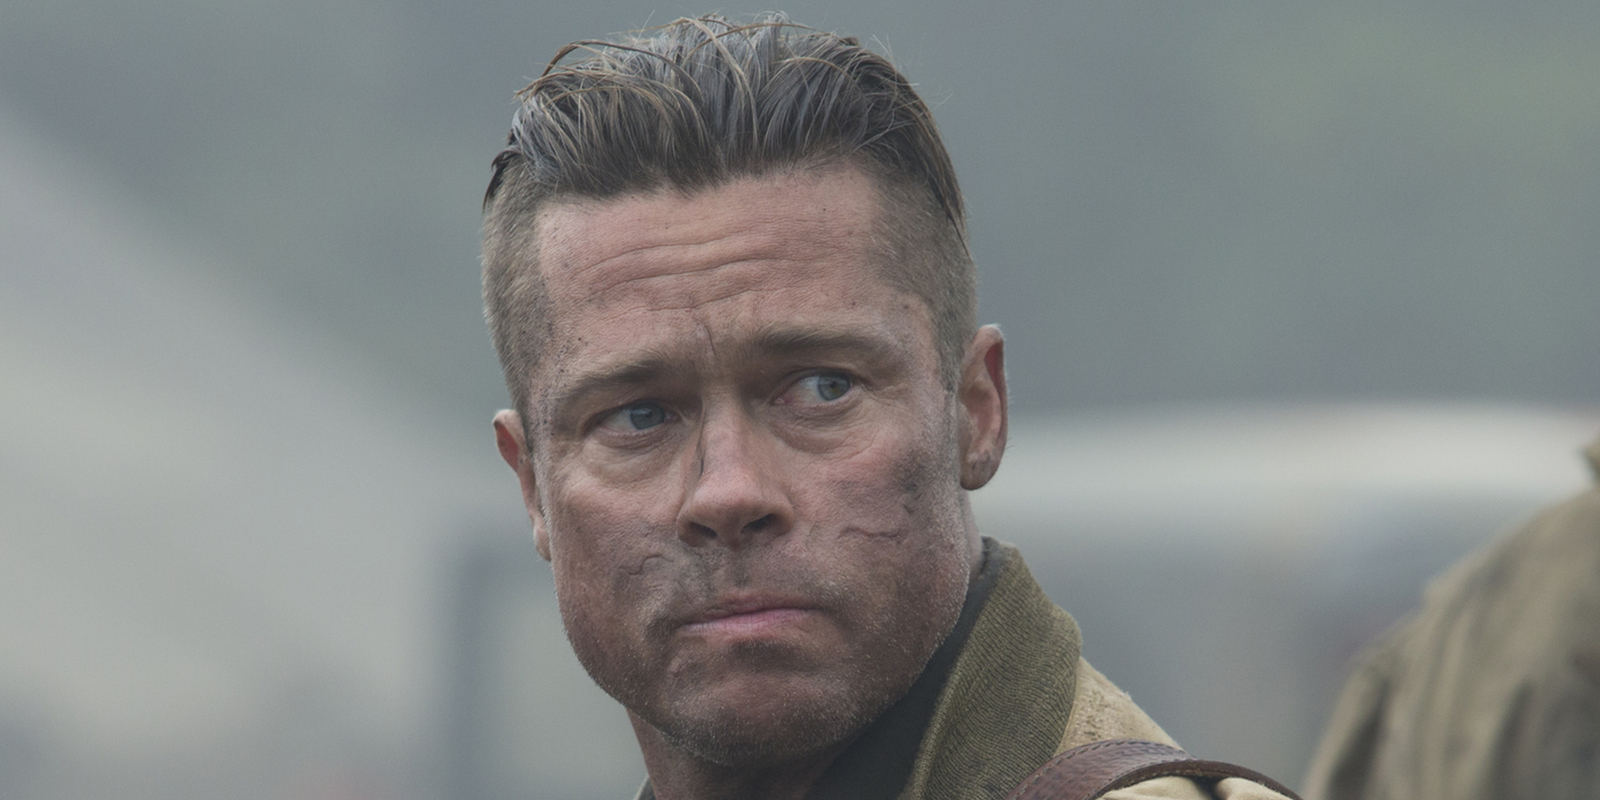 brad pitt fury hair - photo #7